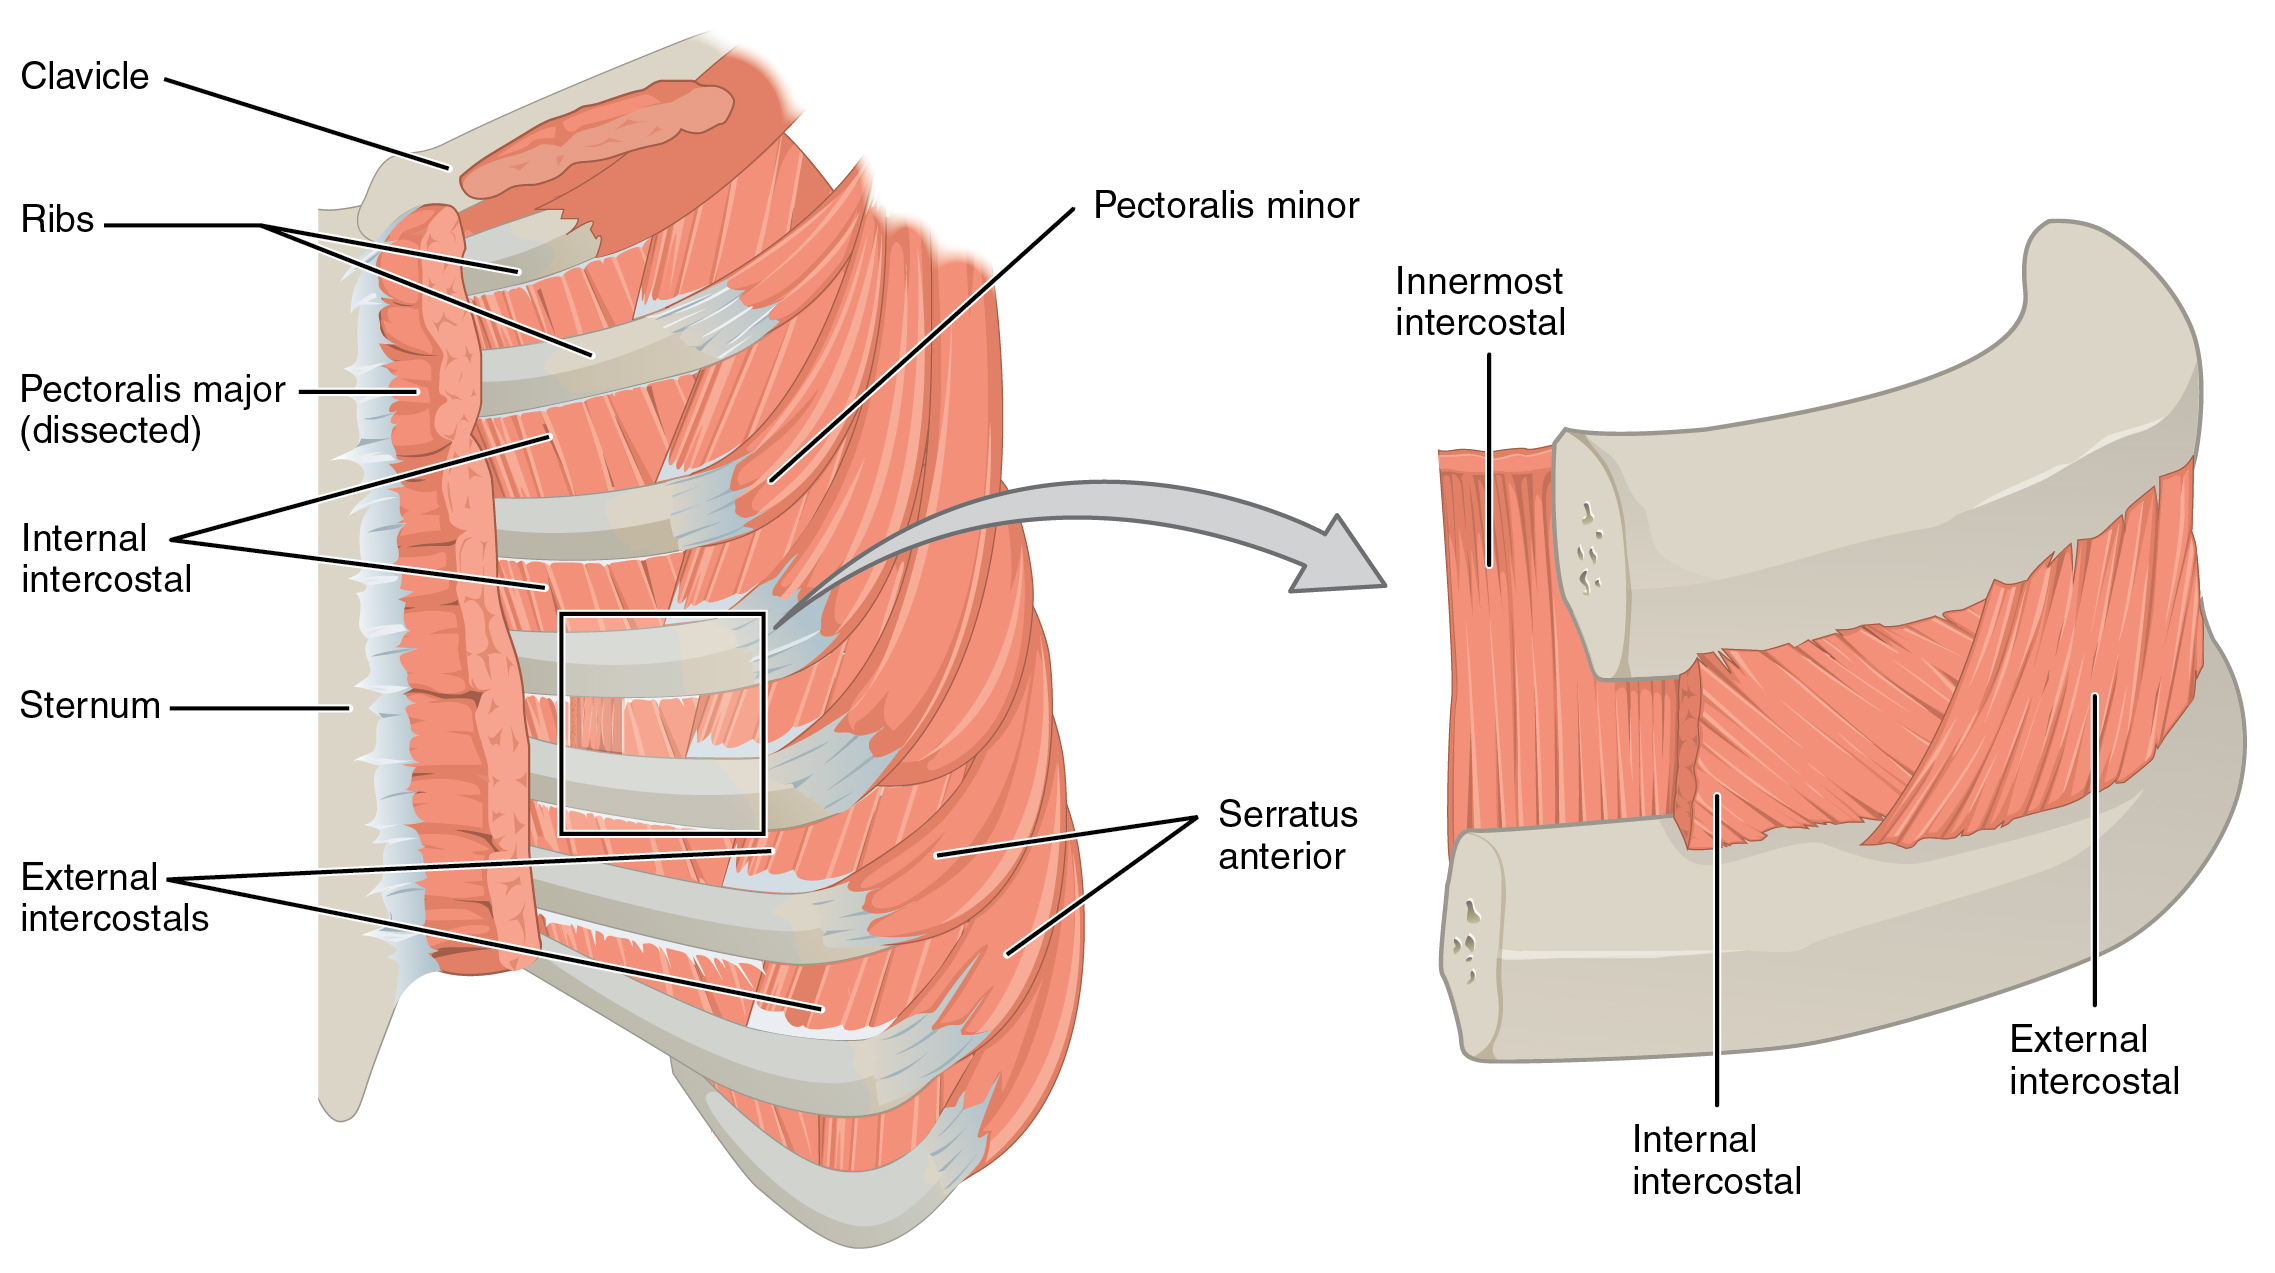 114 Axial Muscles Of The Abdominal Wall And Thorax Anatomy Below Is A Diagram Inhalation Exhalation With Anatomical This Figure Shows In Left Panel Ribs